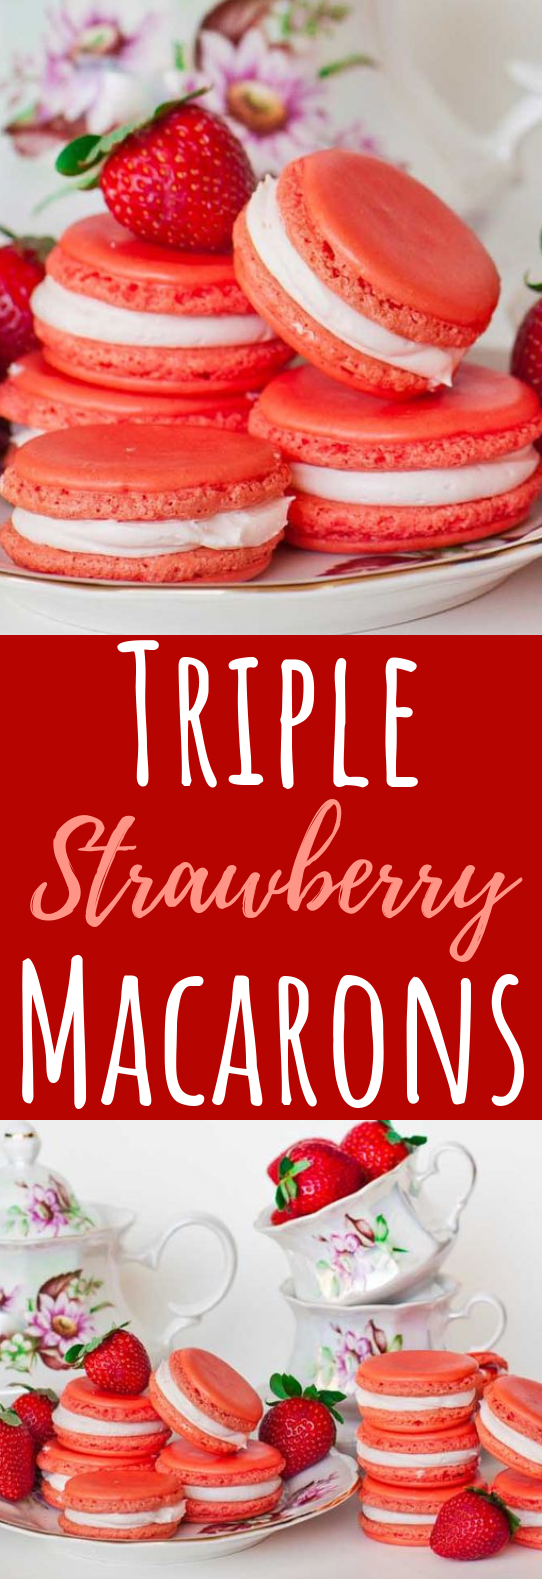 Triple Strawberry Macarons #cookies #desserts